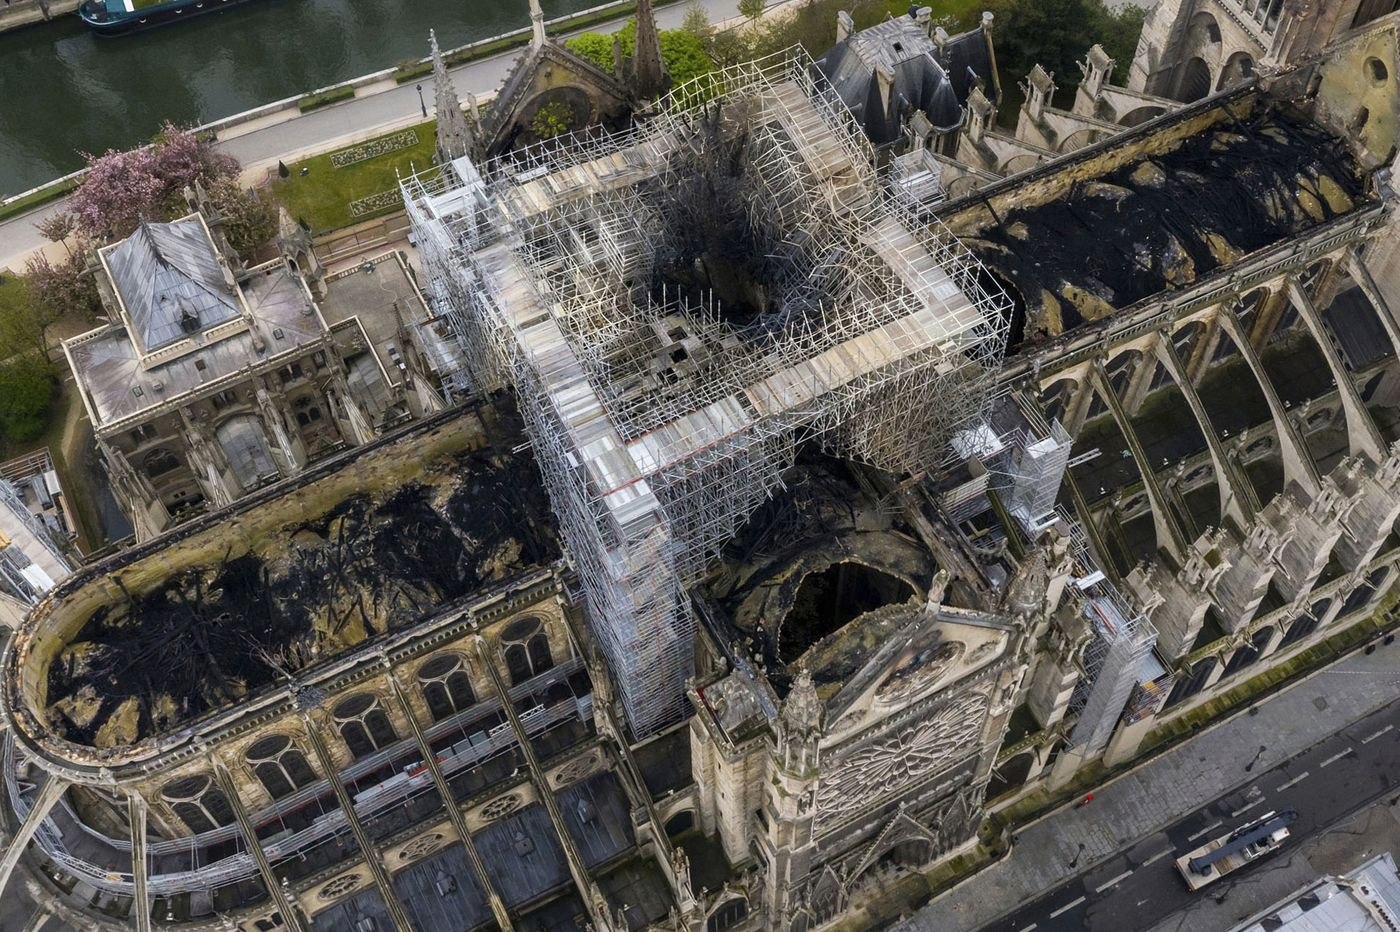 Firefighters had a secret weapon when Notre Dame caught fire: A robot named 'Colossus'